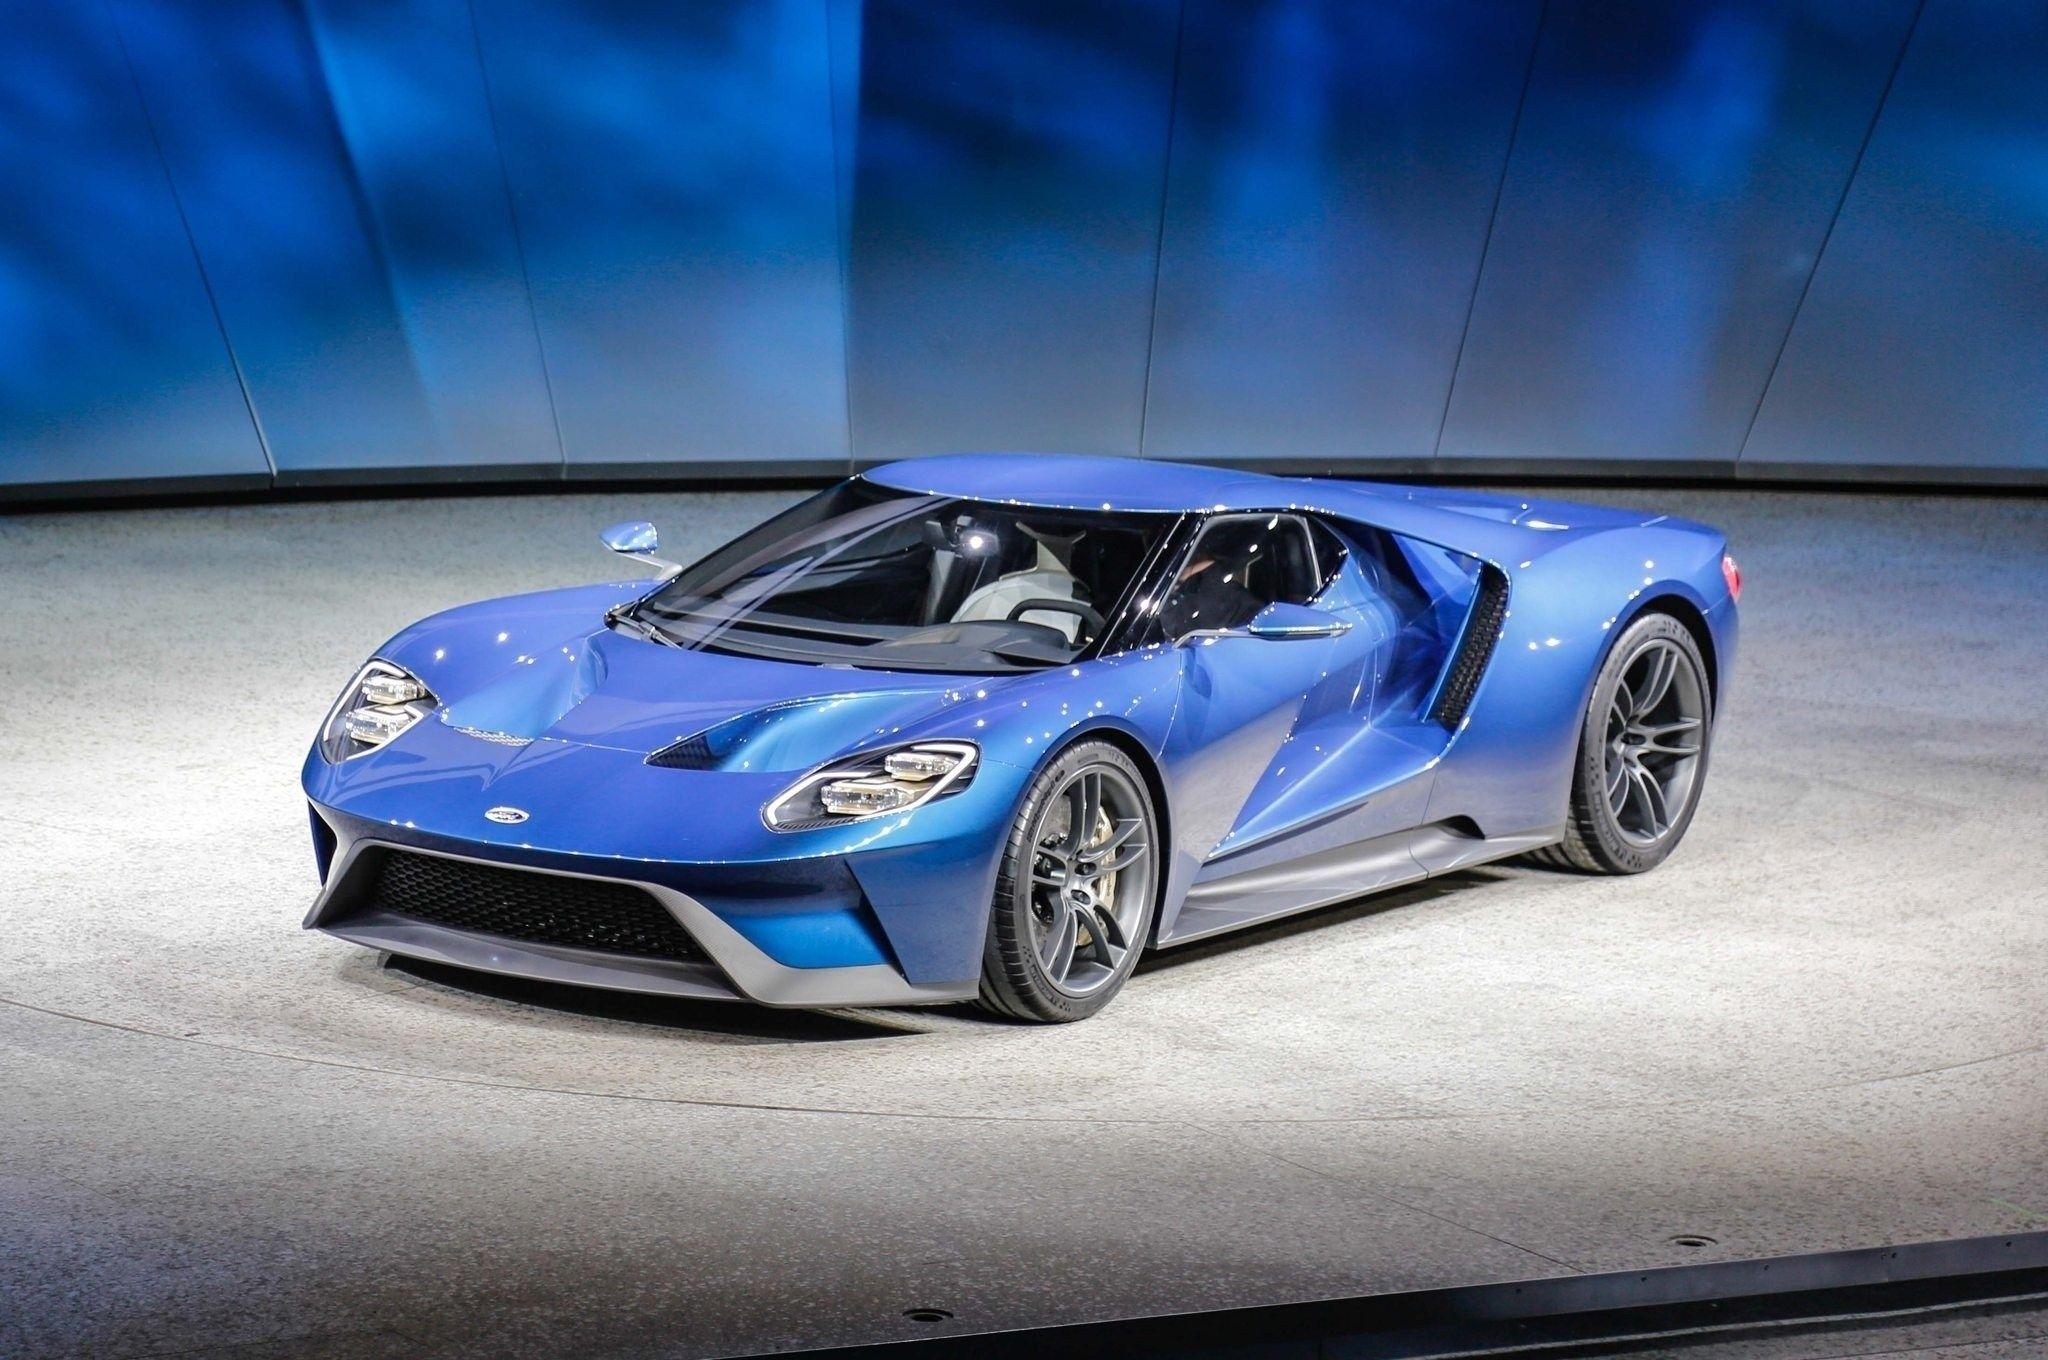 2019 Ford Gt New Release Autos Nuevos Autos Coches